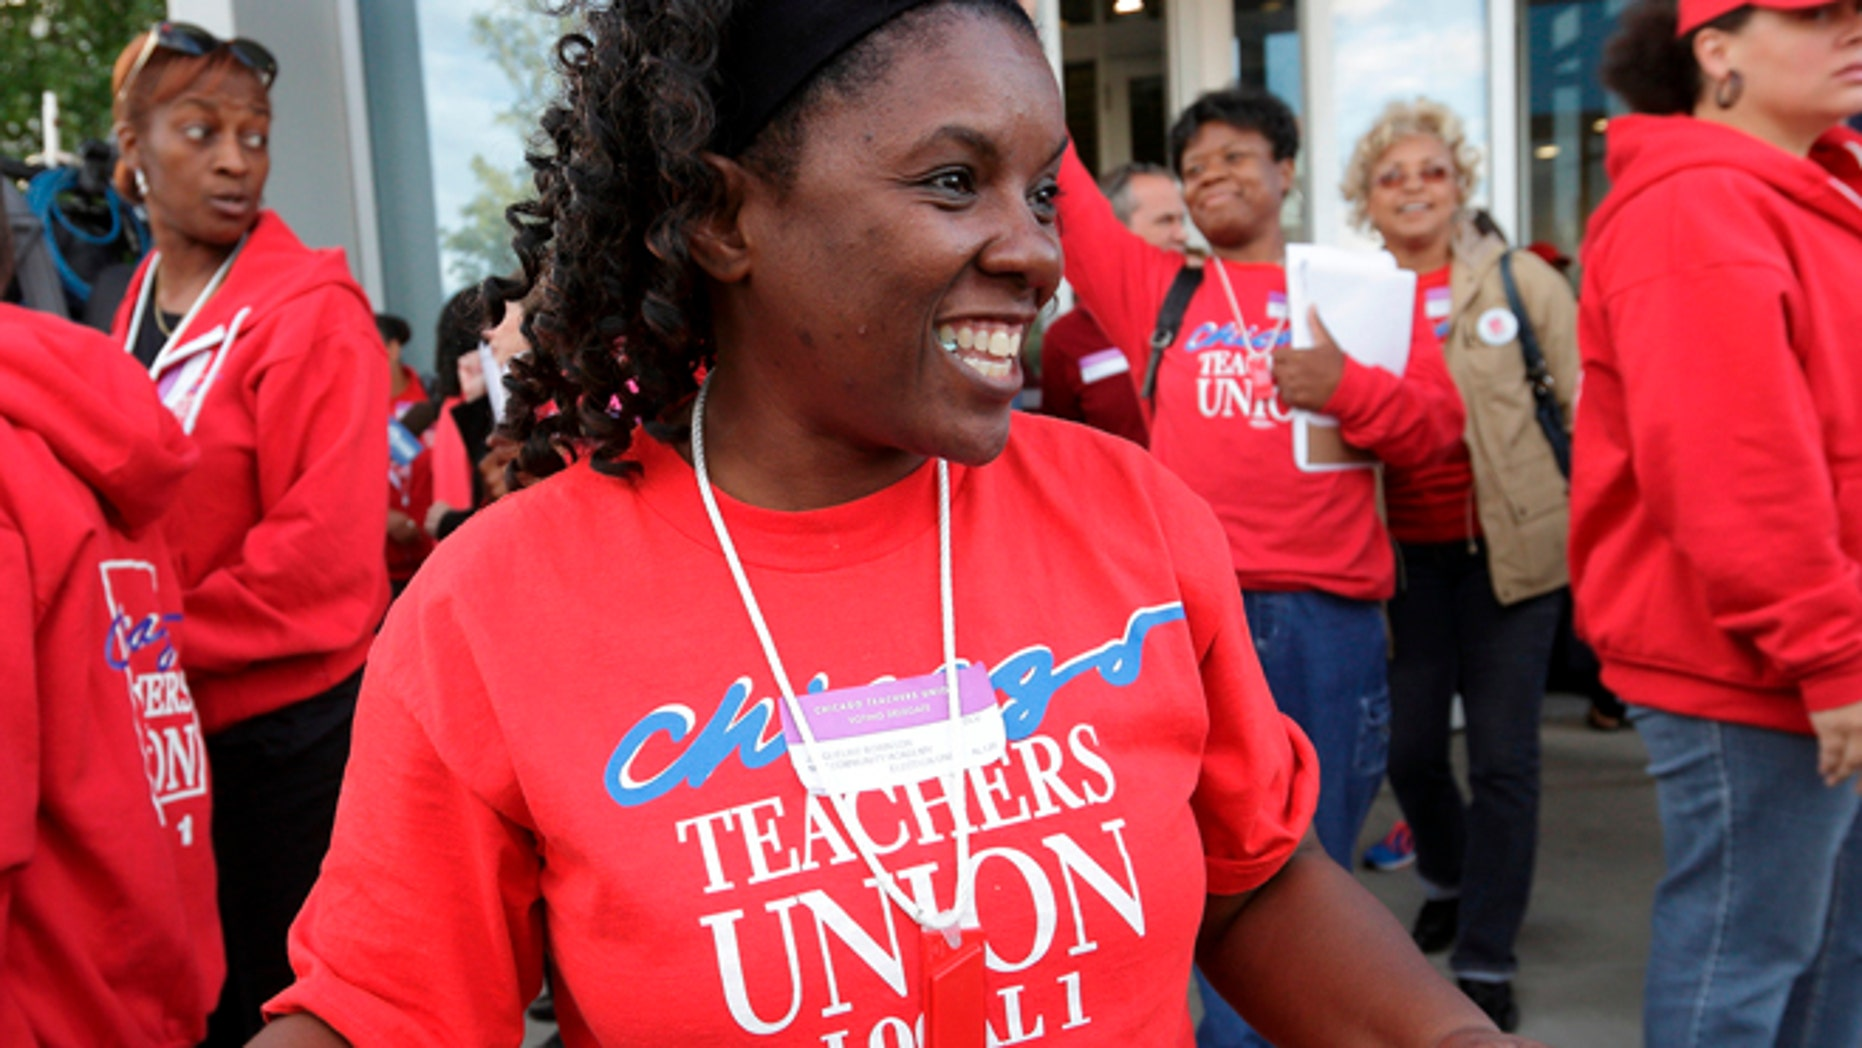 FILE: September 18, 2012: A member of the Chicago Teachers Union, in Chicago, Ill.